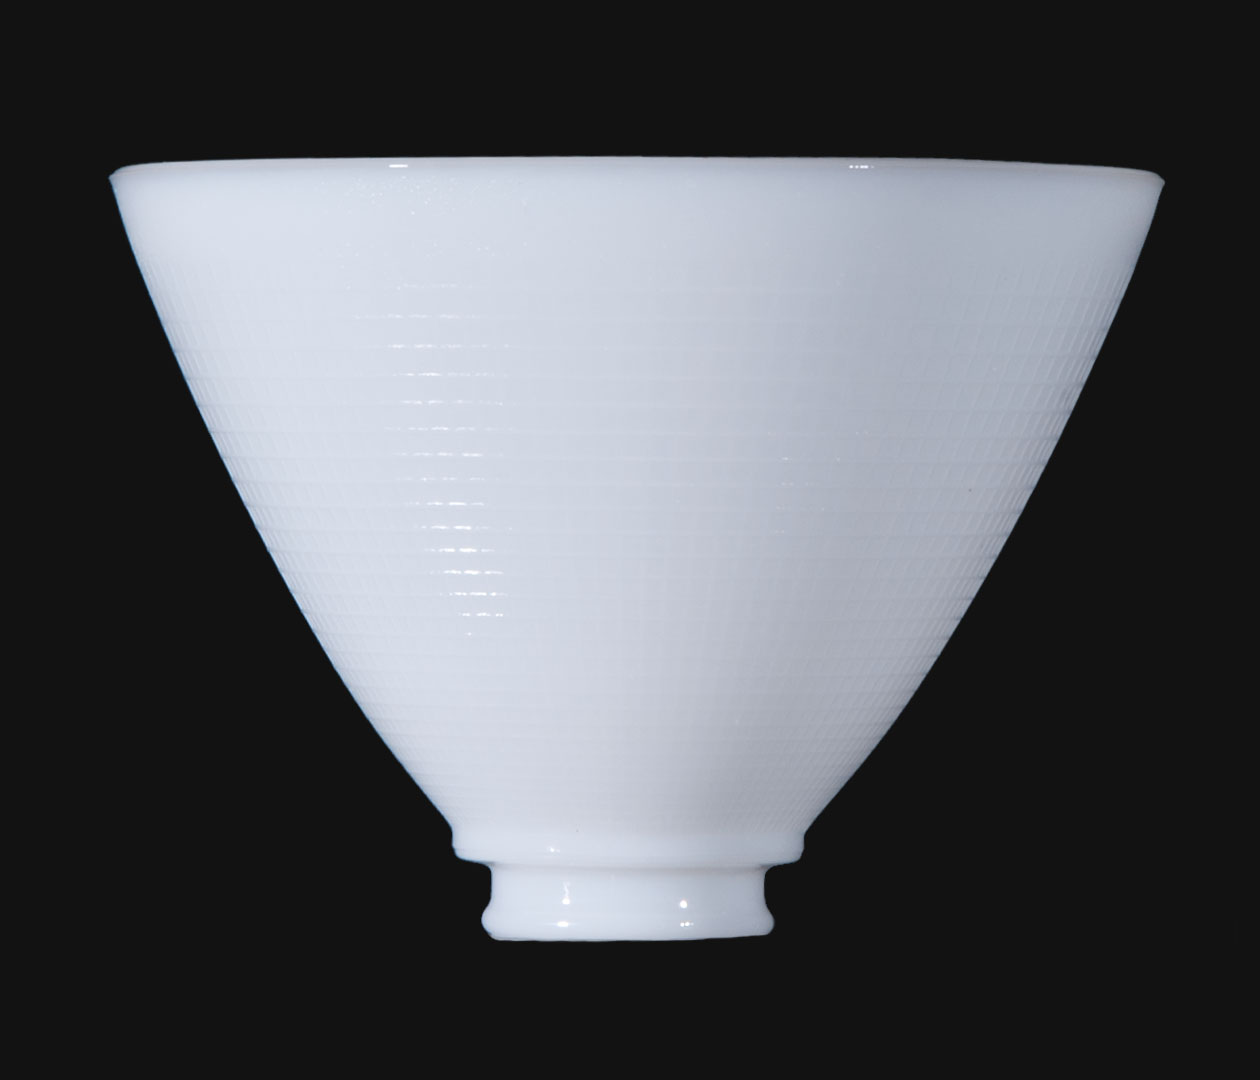 Wholesale lamp parts bp lamp supply for Plastic torchiere floor lamp shade replacement